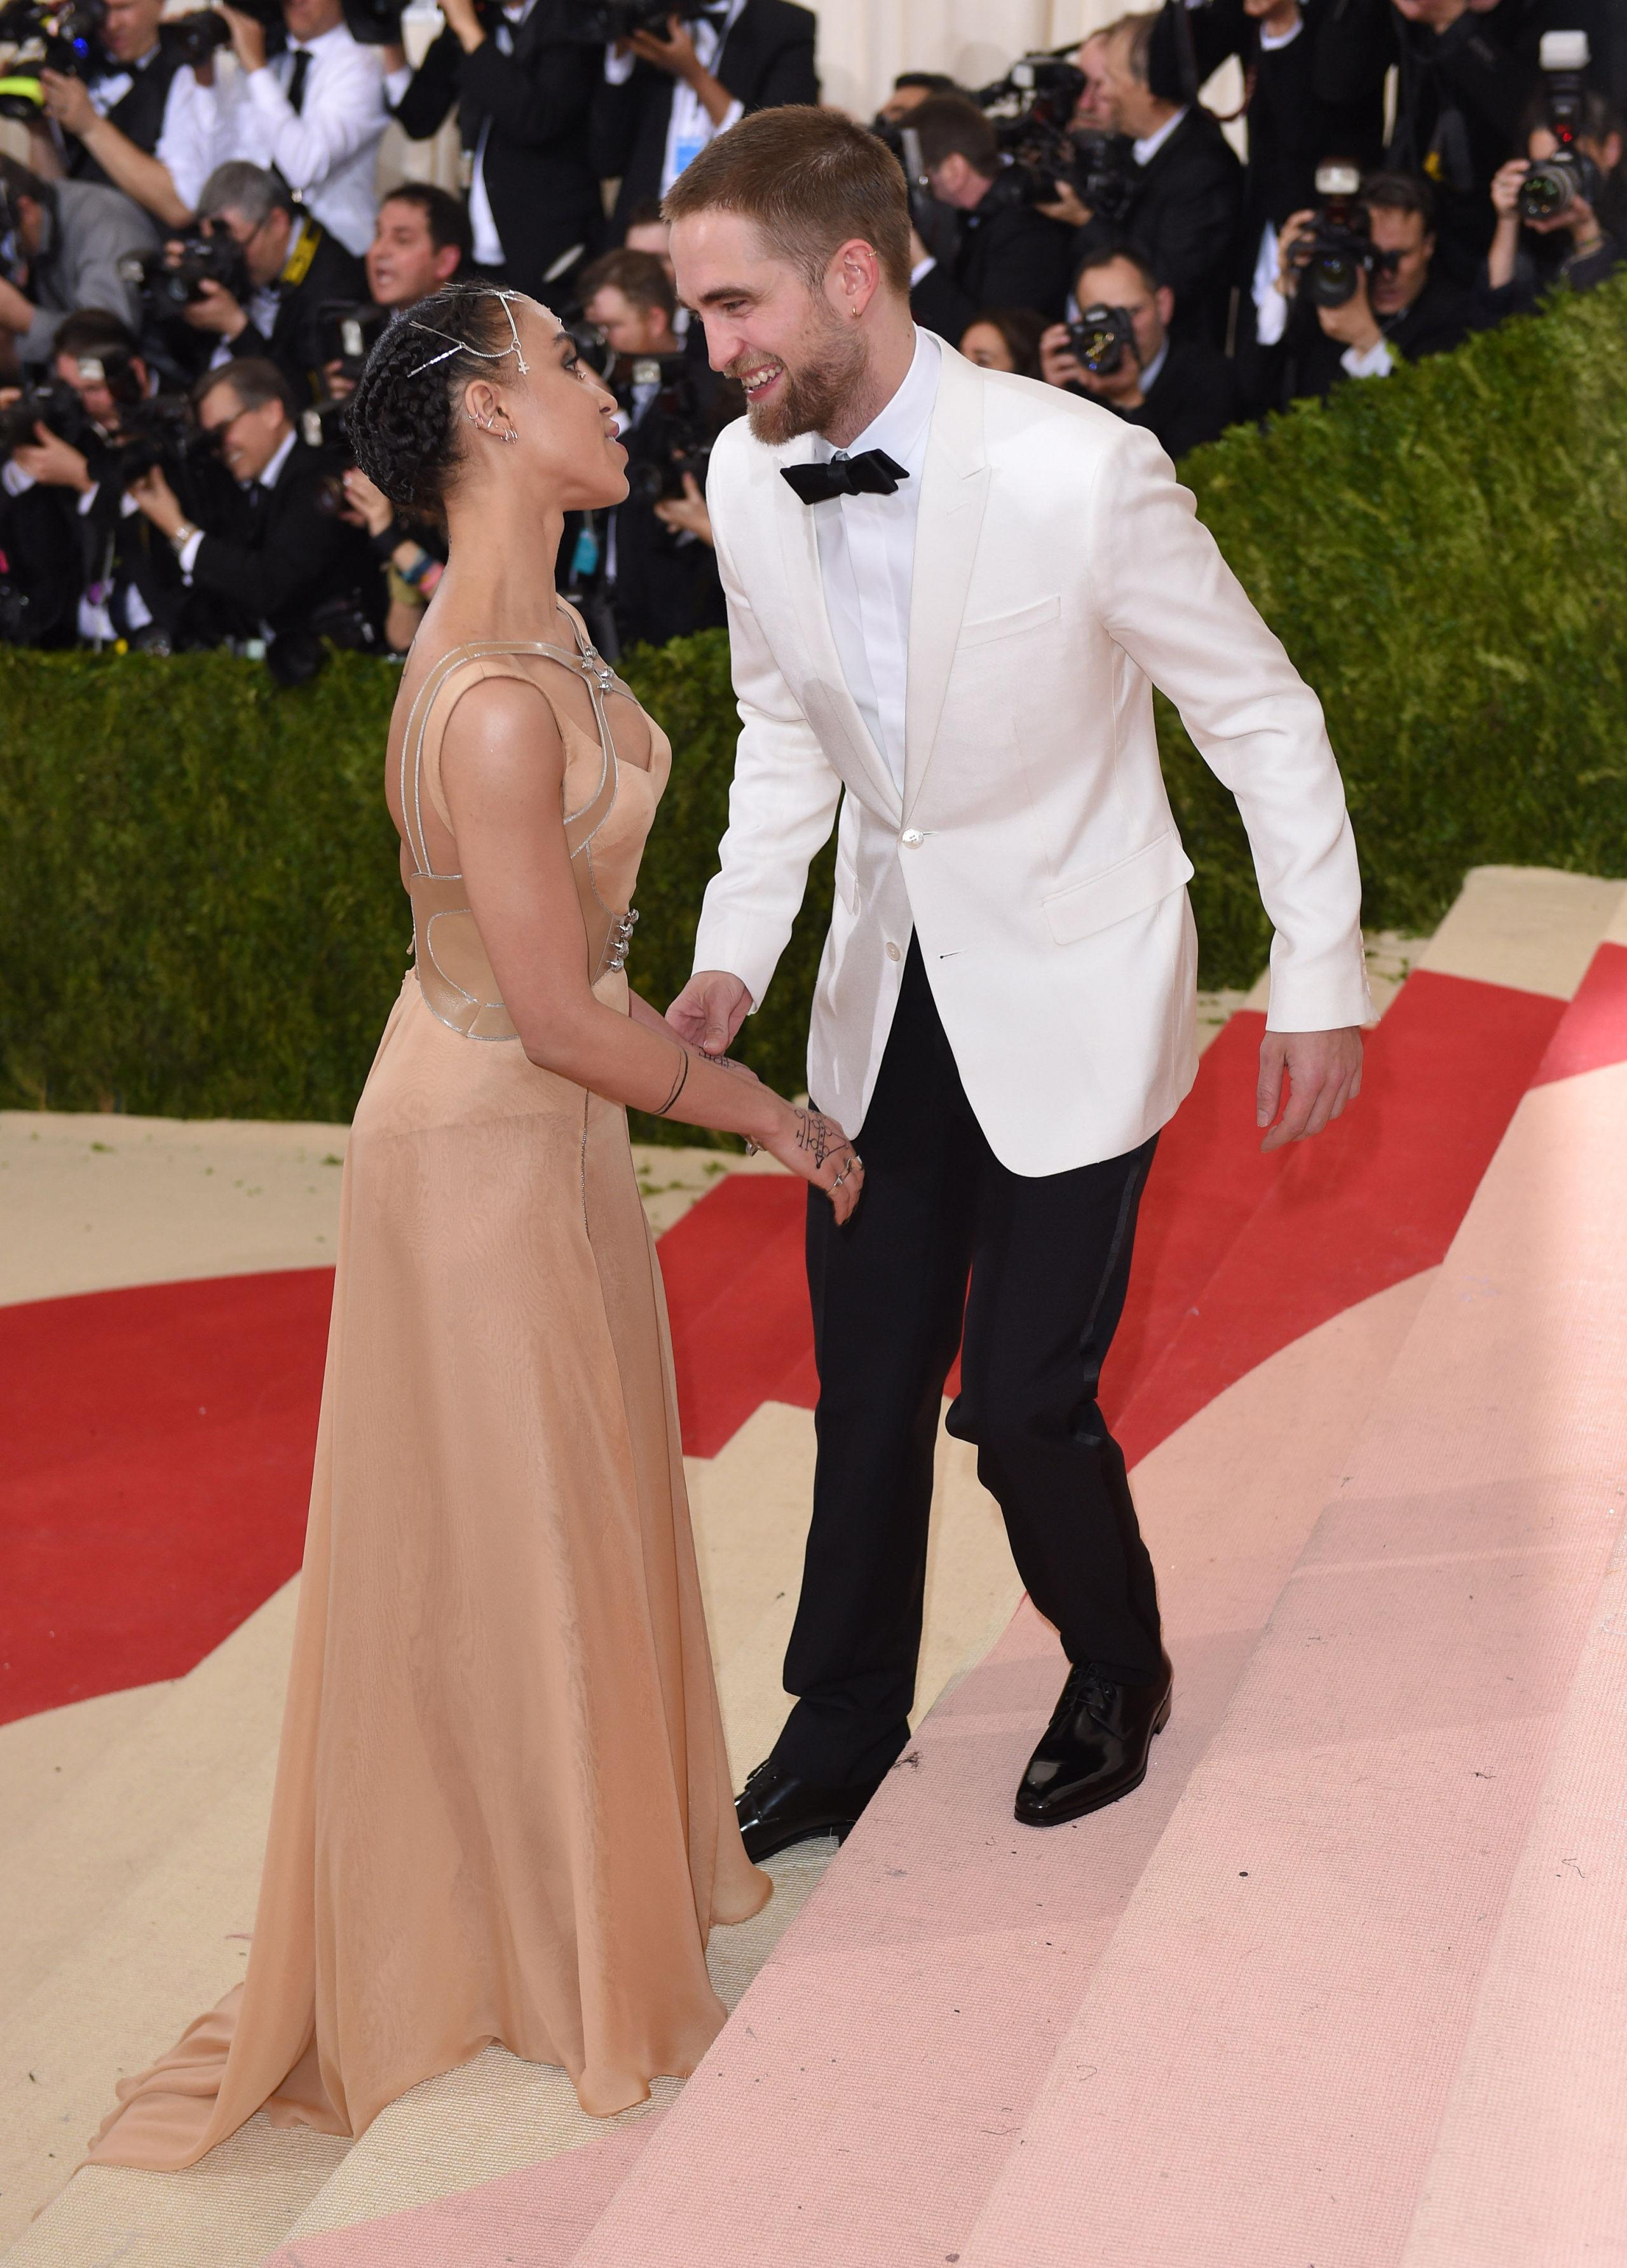 12 Adorable Photos of Robert Pattinson and FKA twigs at the Met Gala